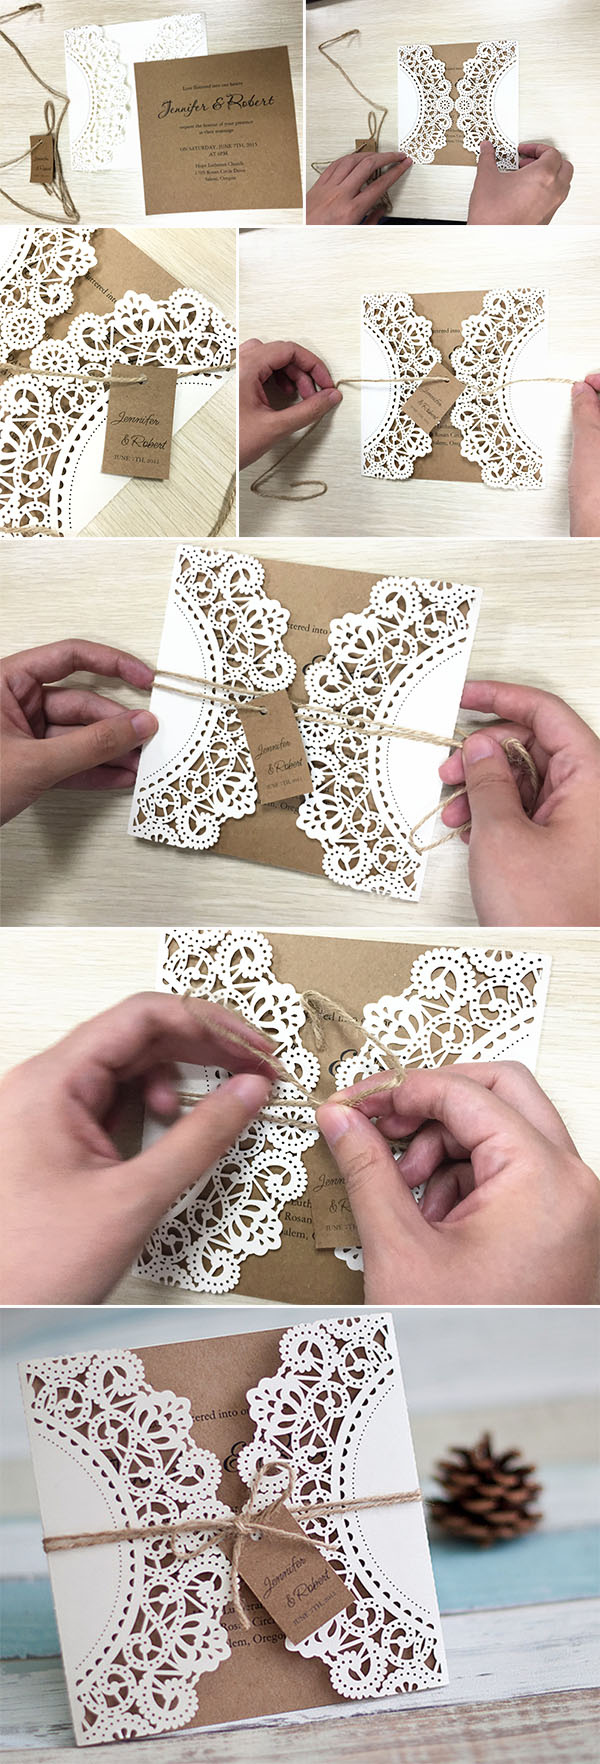 Diy Wedding Ideas 10 Perfect Ways To Use Paper For Weddings